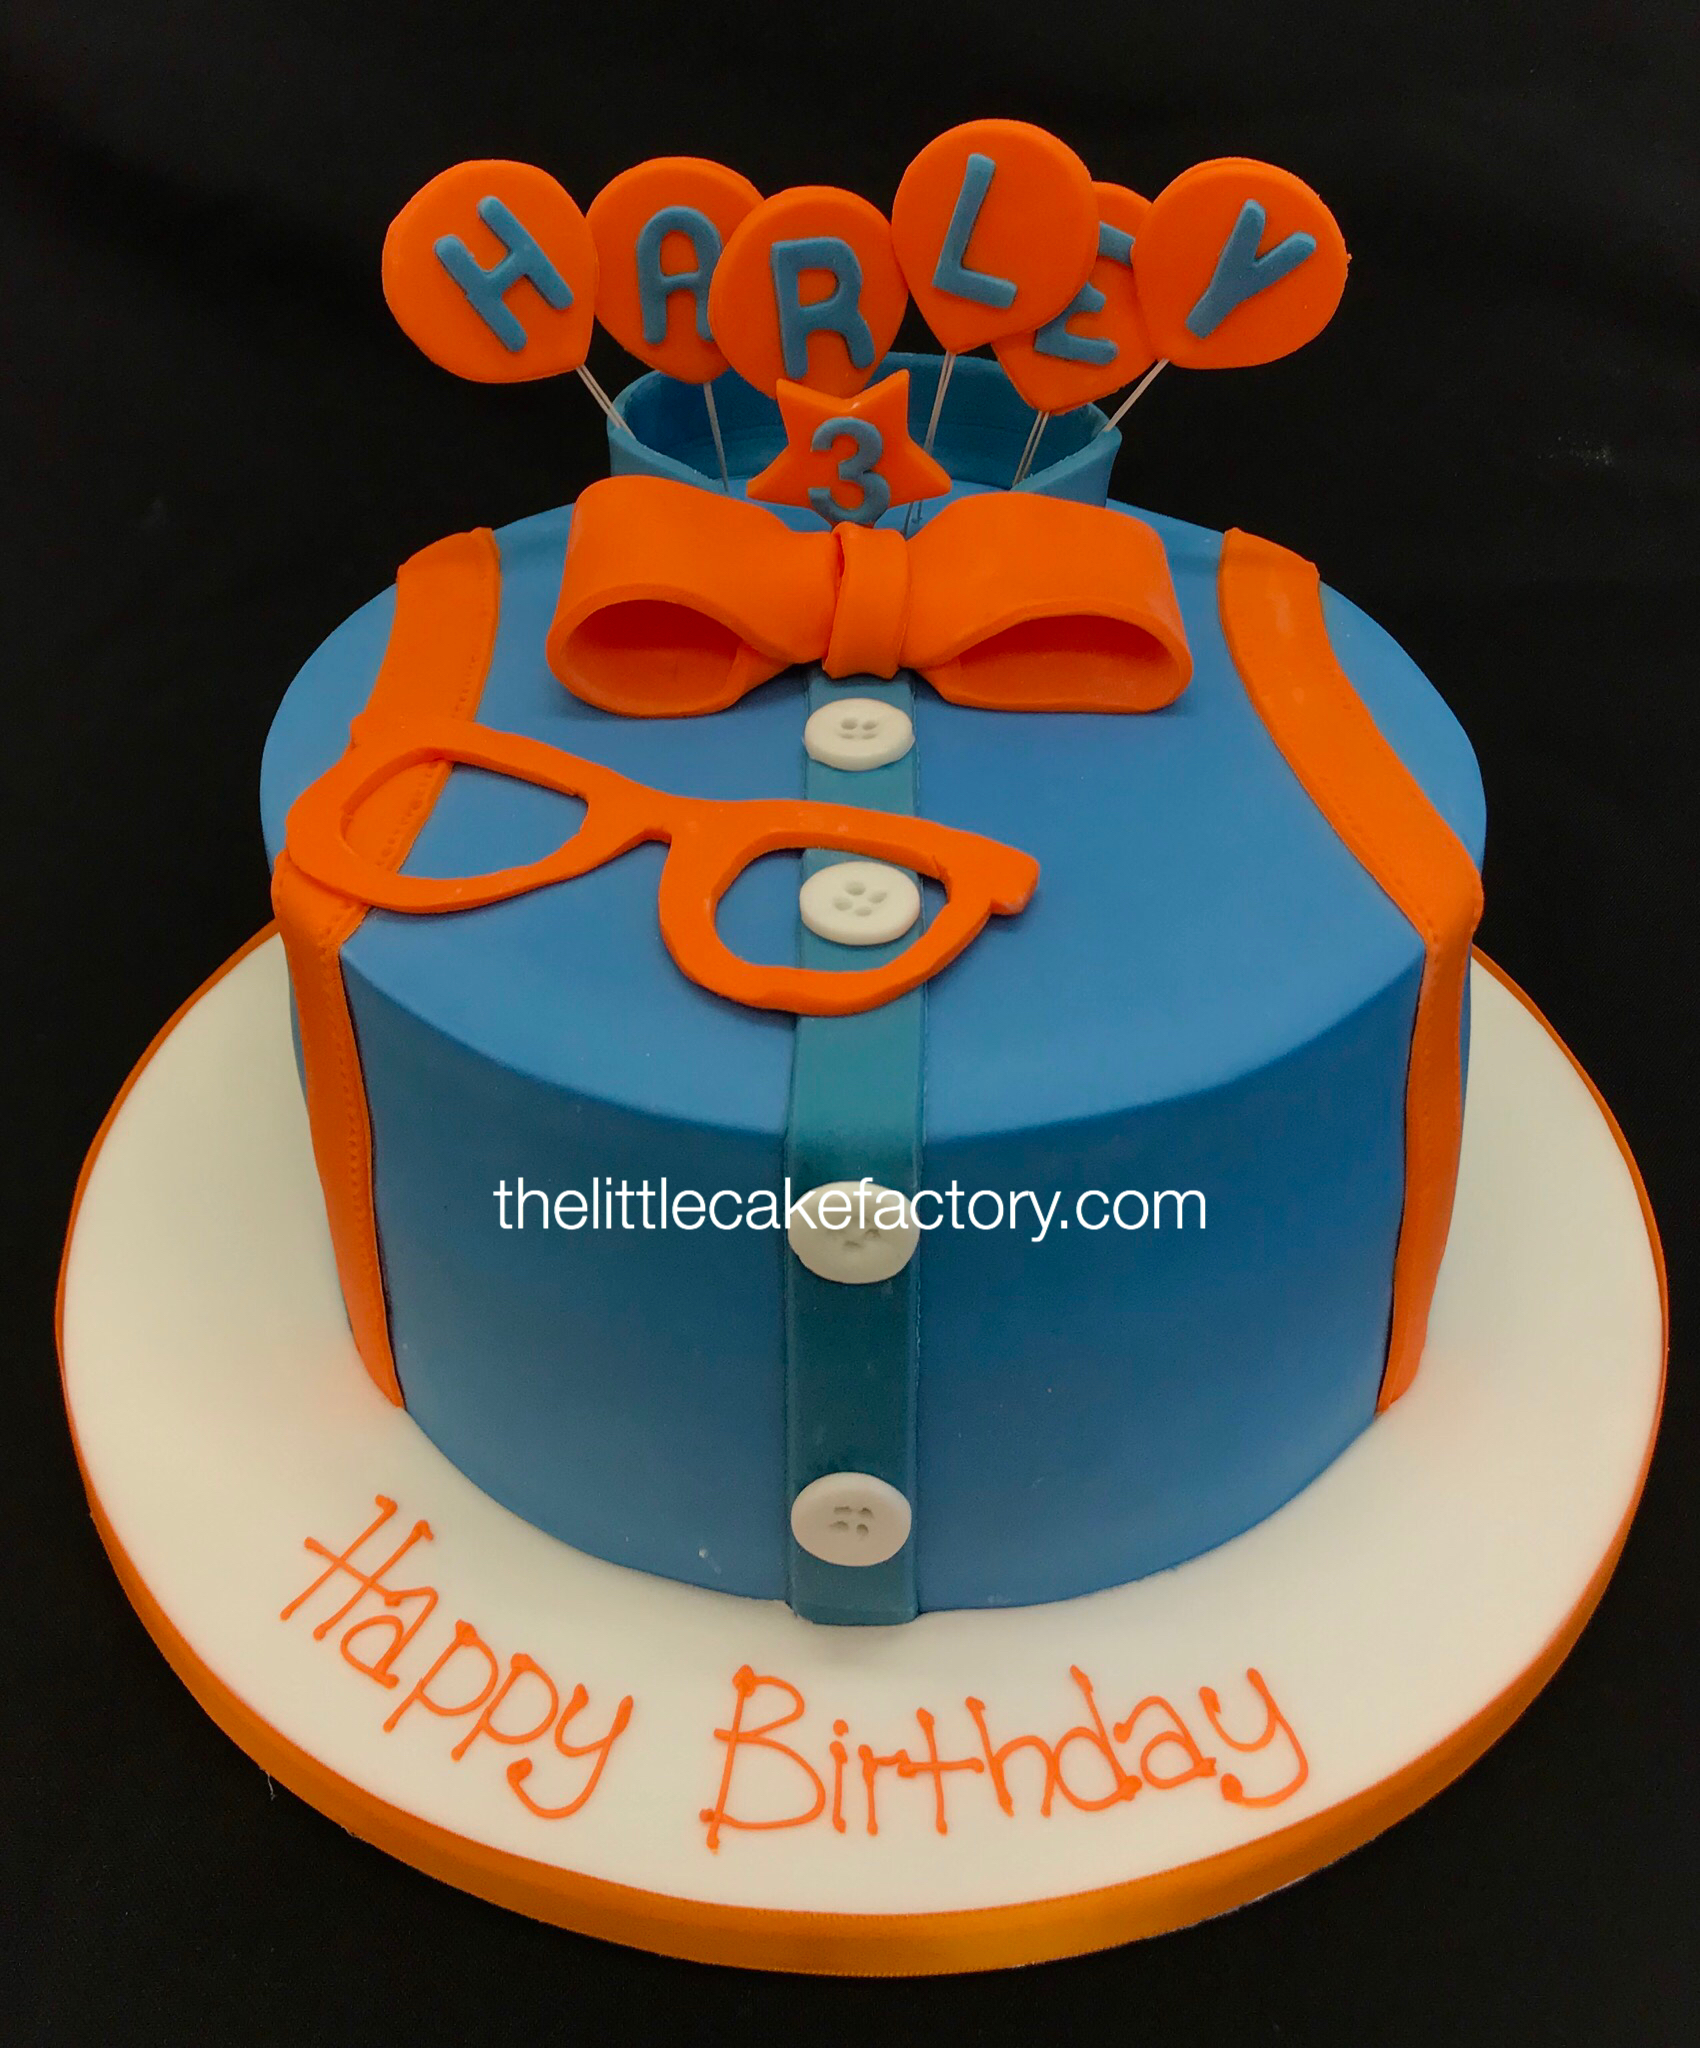 Birthday Cakes Wedding Cakes Bar Mitzvah Cakes Essex